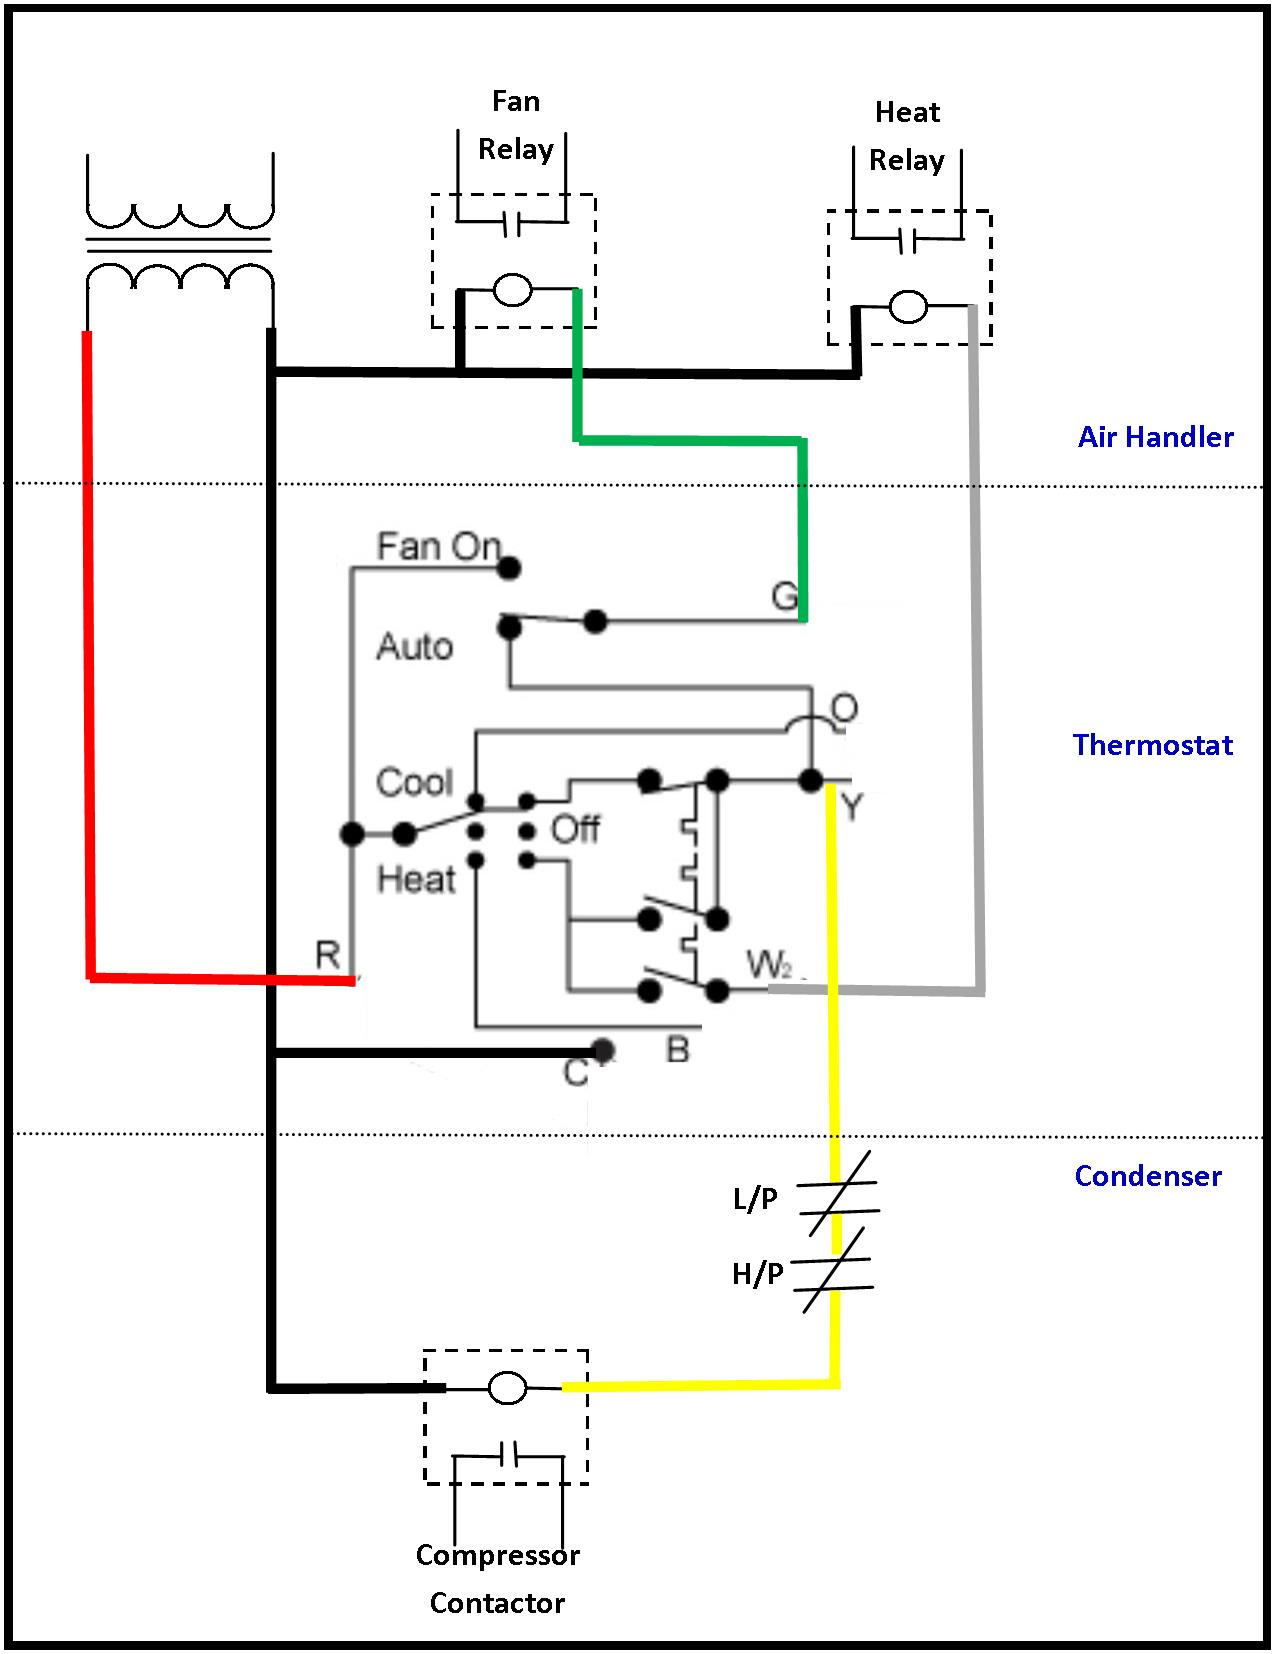 AC low voltage wiring diagram1 hvac wiring diagram efcaviation com hvac wiring schematics at creativeand.co